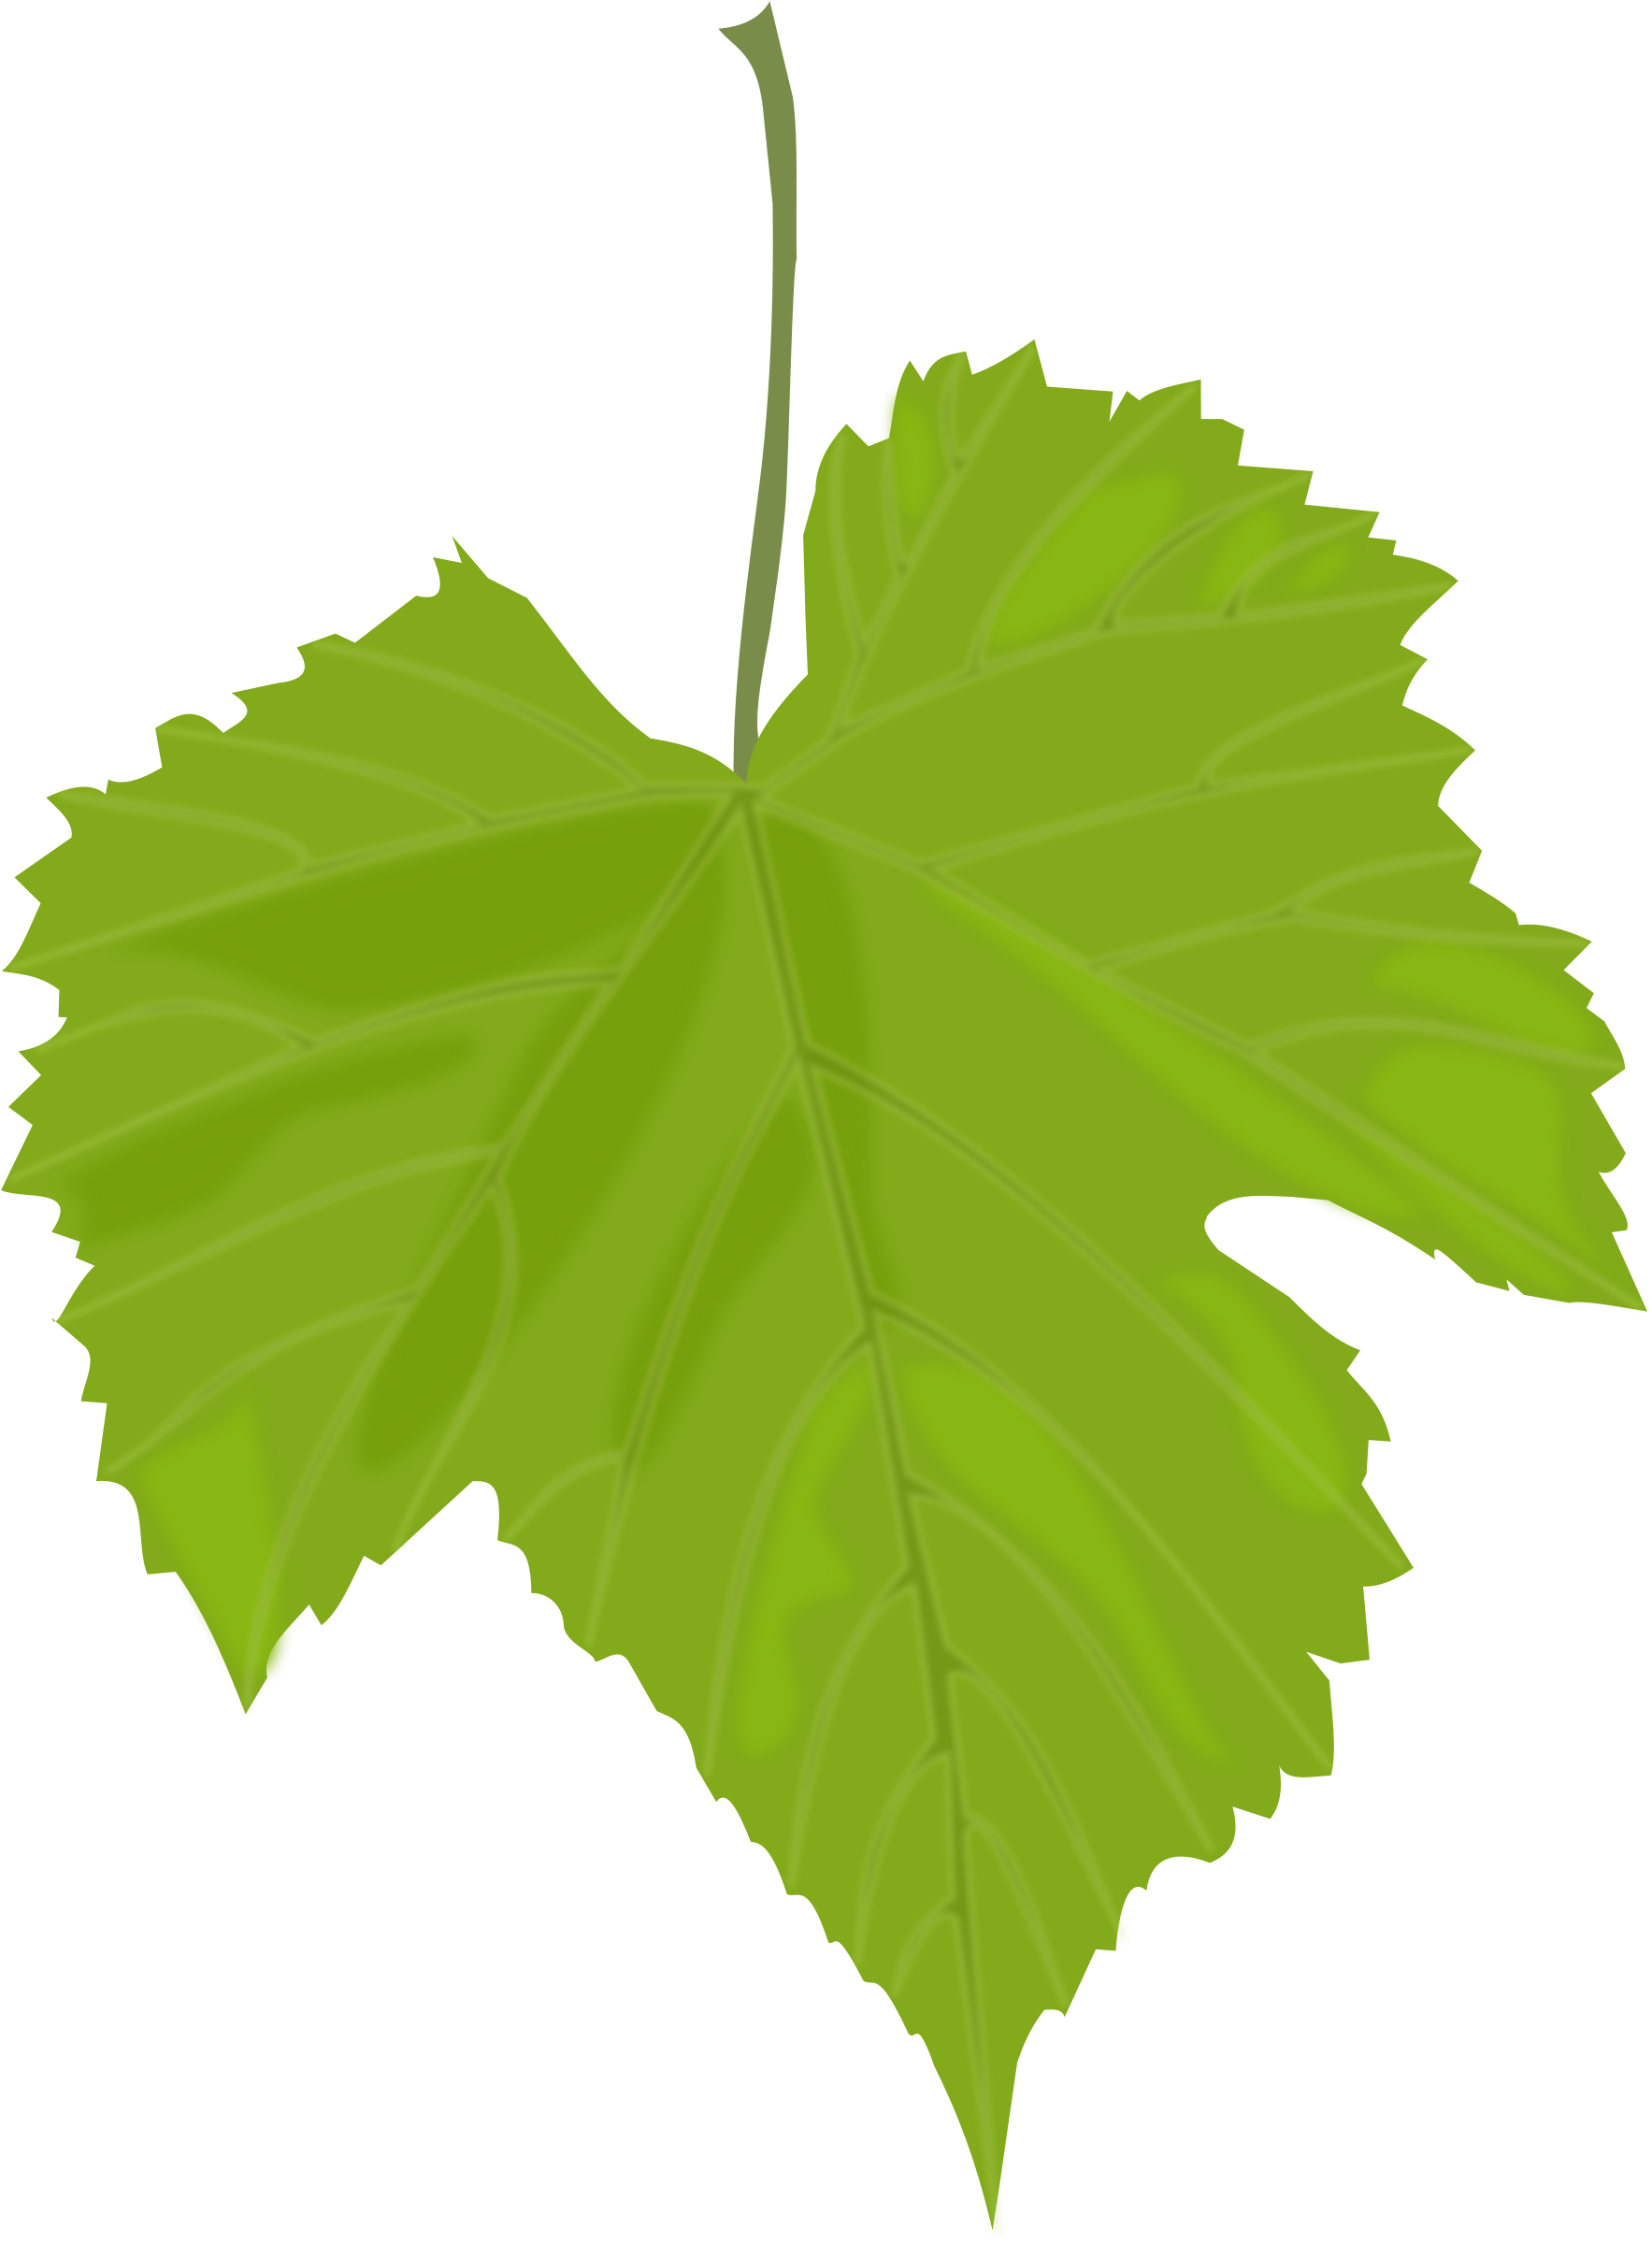 Falling green leaves png. Image purepng free transparent